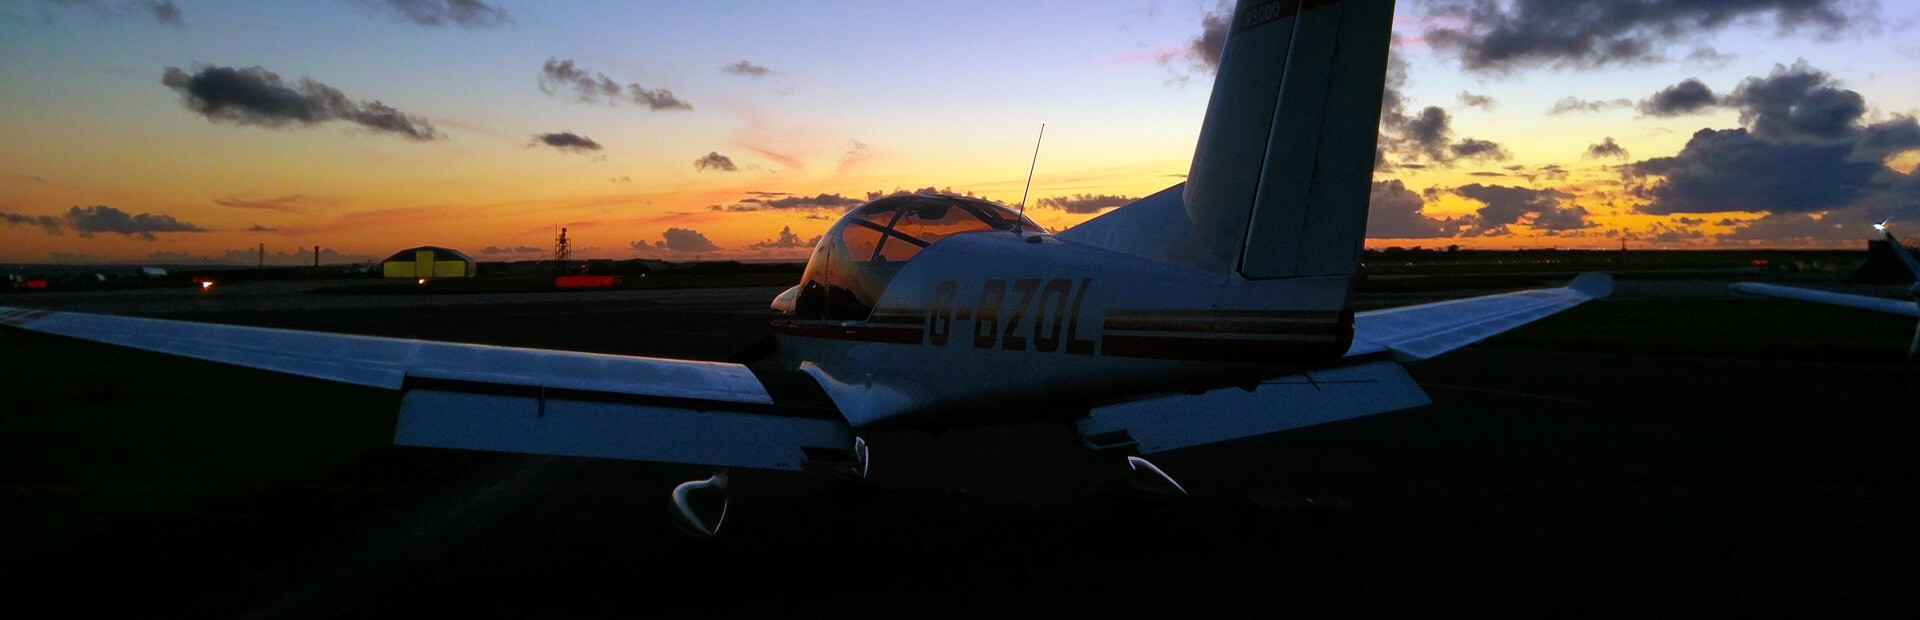 Night Rating's available from November 2017 at Cornwall Airport Newquay